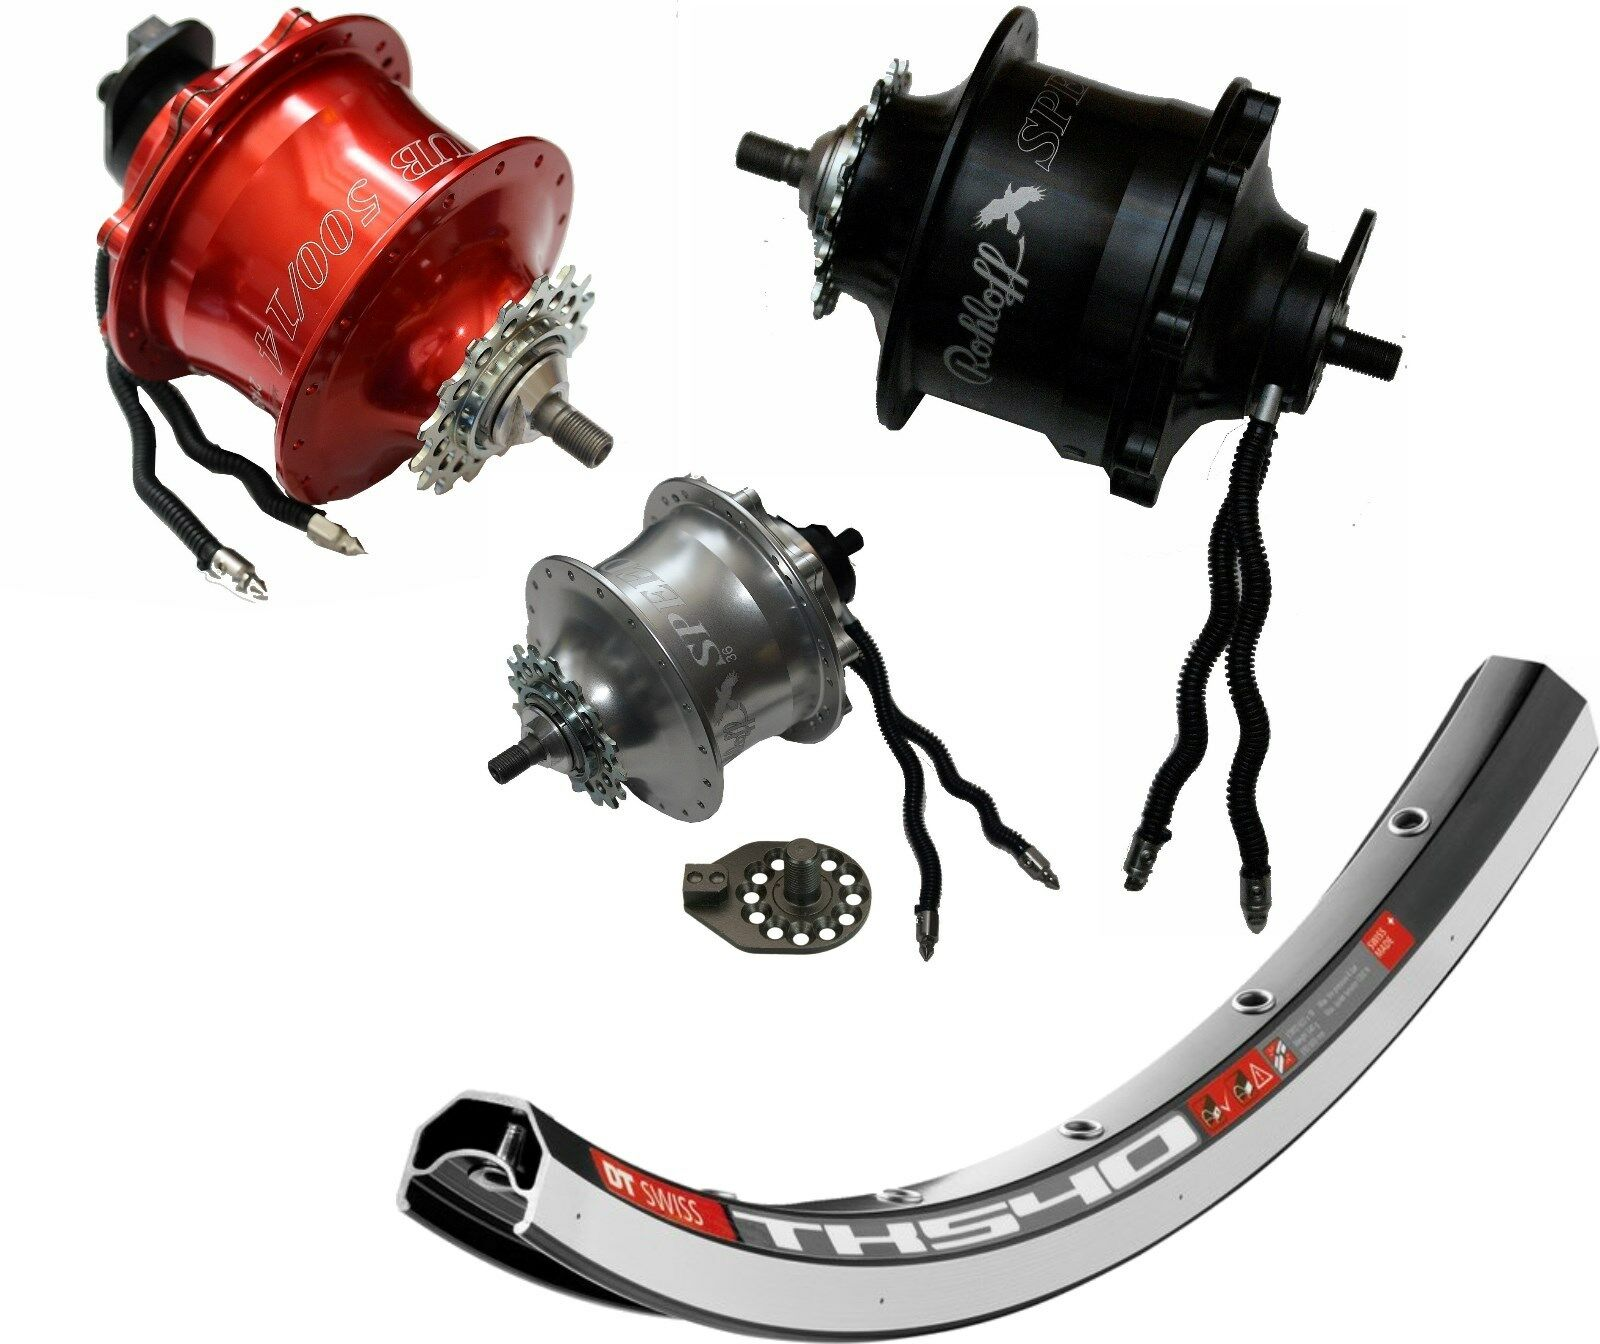 Rueda Rohloff Speedhub  Modelo 8045 8046 8047 Ts Oem Diversos Tamaños 20-28   incentive promotionals